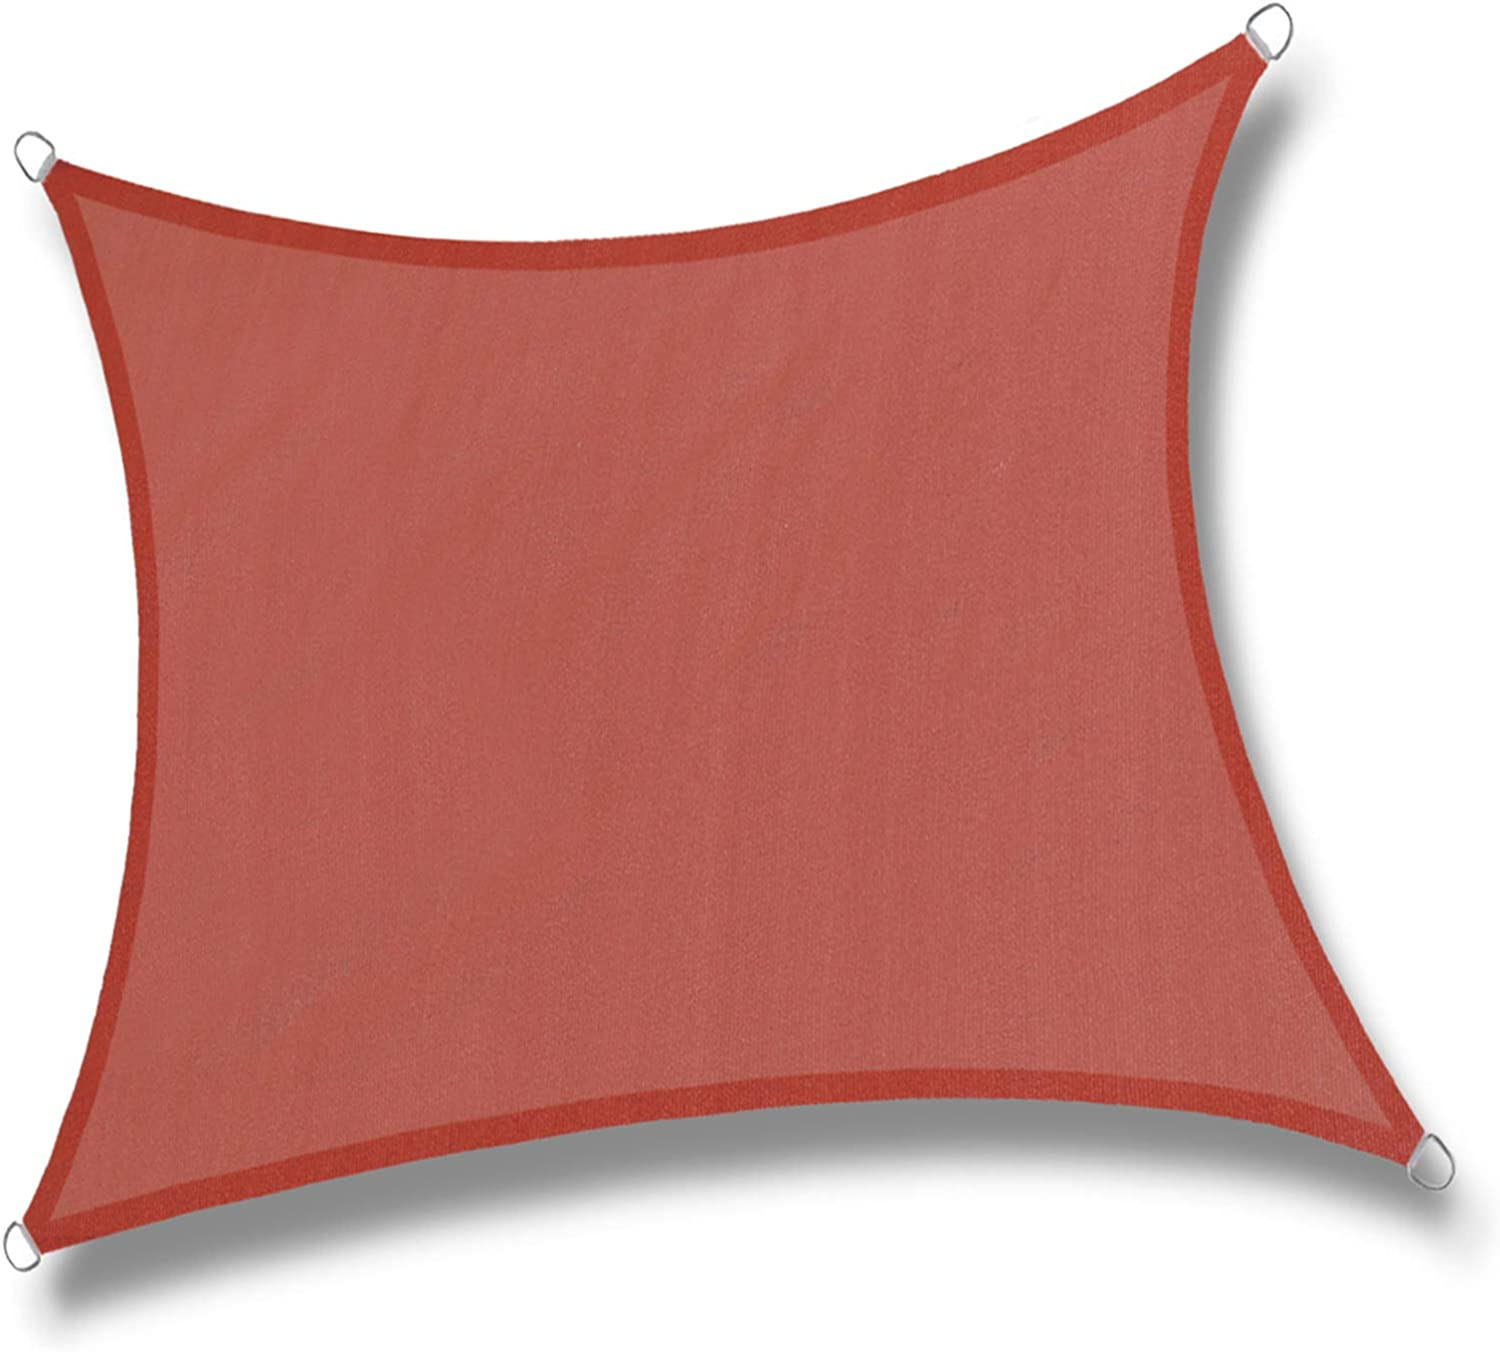 LOVE STORY 20' x 20' Square Terra Red Sun Shade Sail Canopy UV Block Awning for Outdoor Patio Garden Backyard